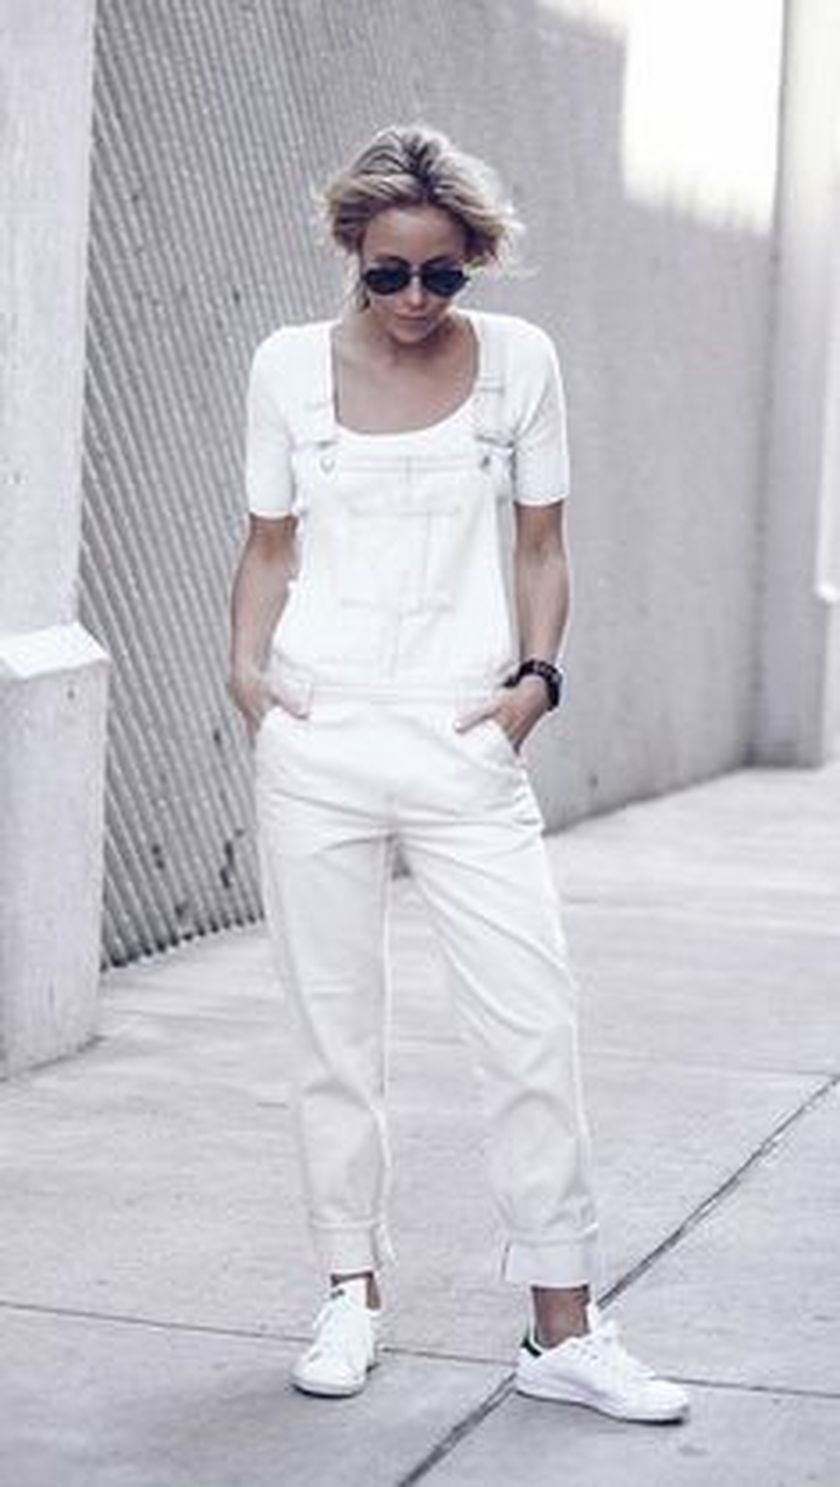 How to wear white sneaker for spring outfits 128